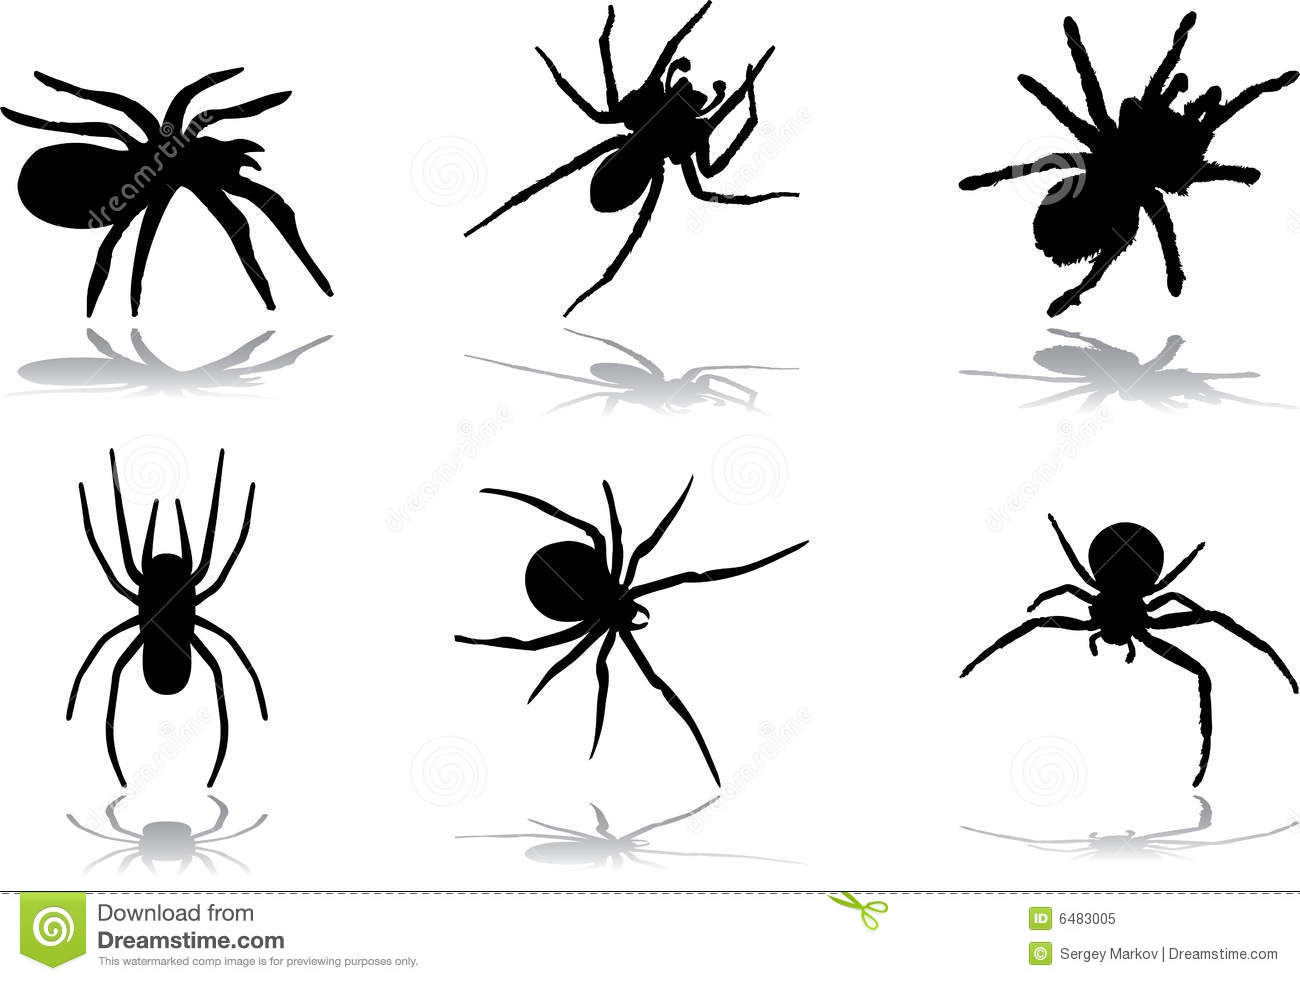 design halloween icons set spiders - Halloween Spiders